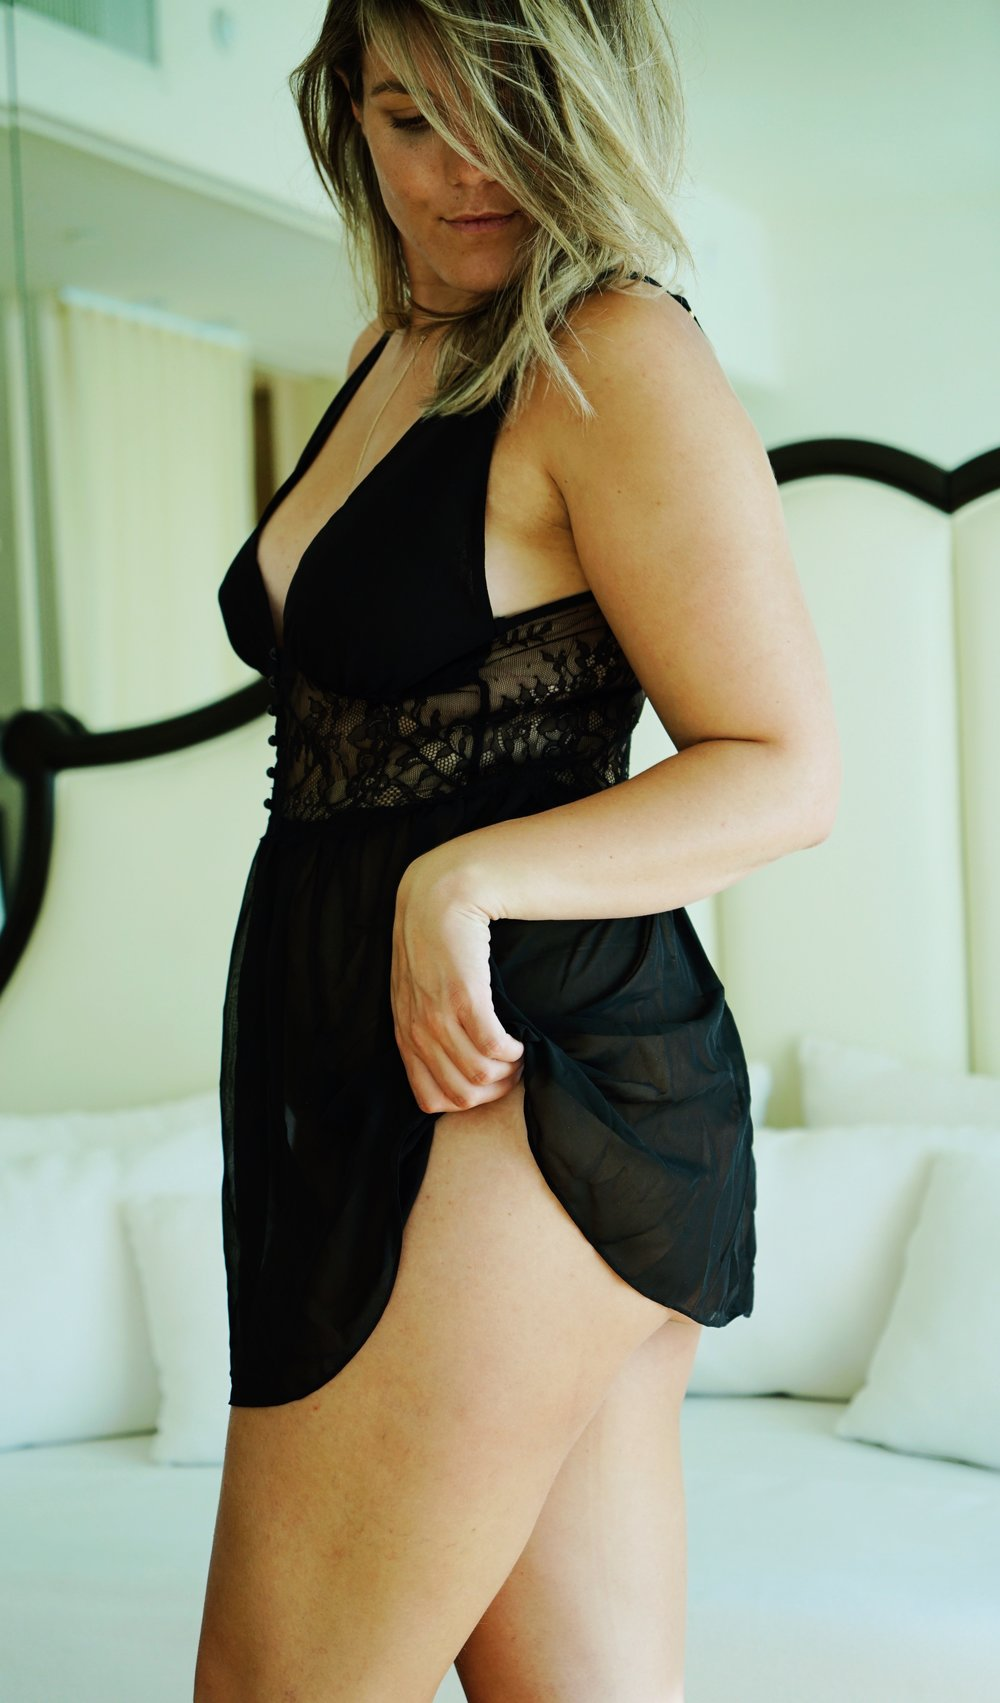 Chantilly Chemise in Black by Rya Collection.JPG